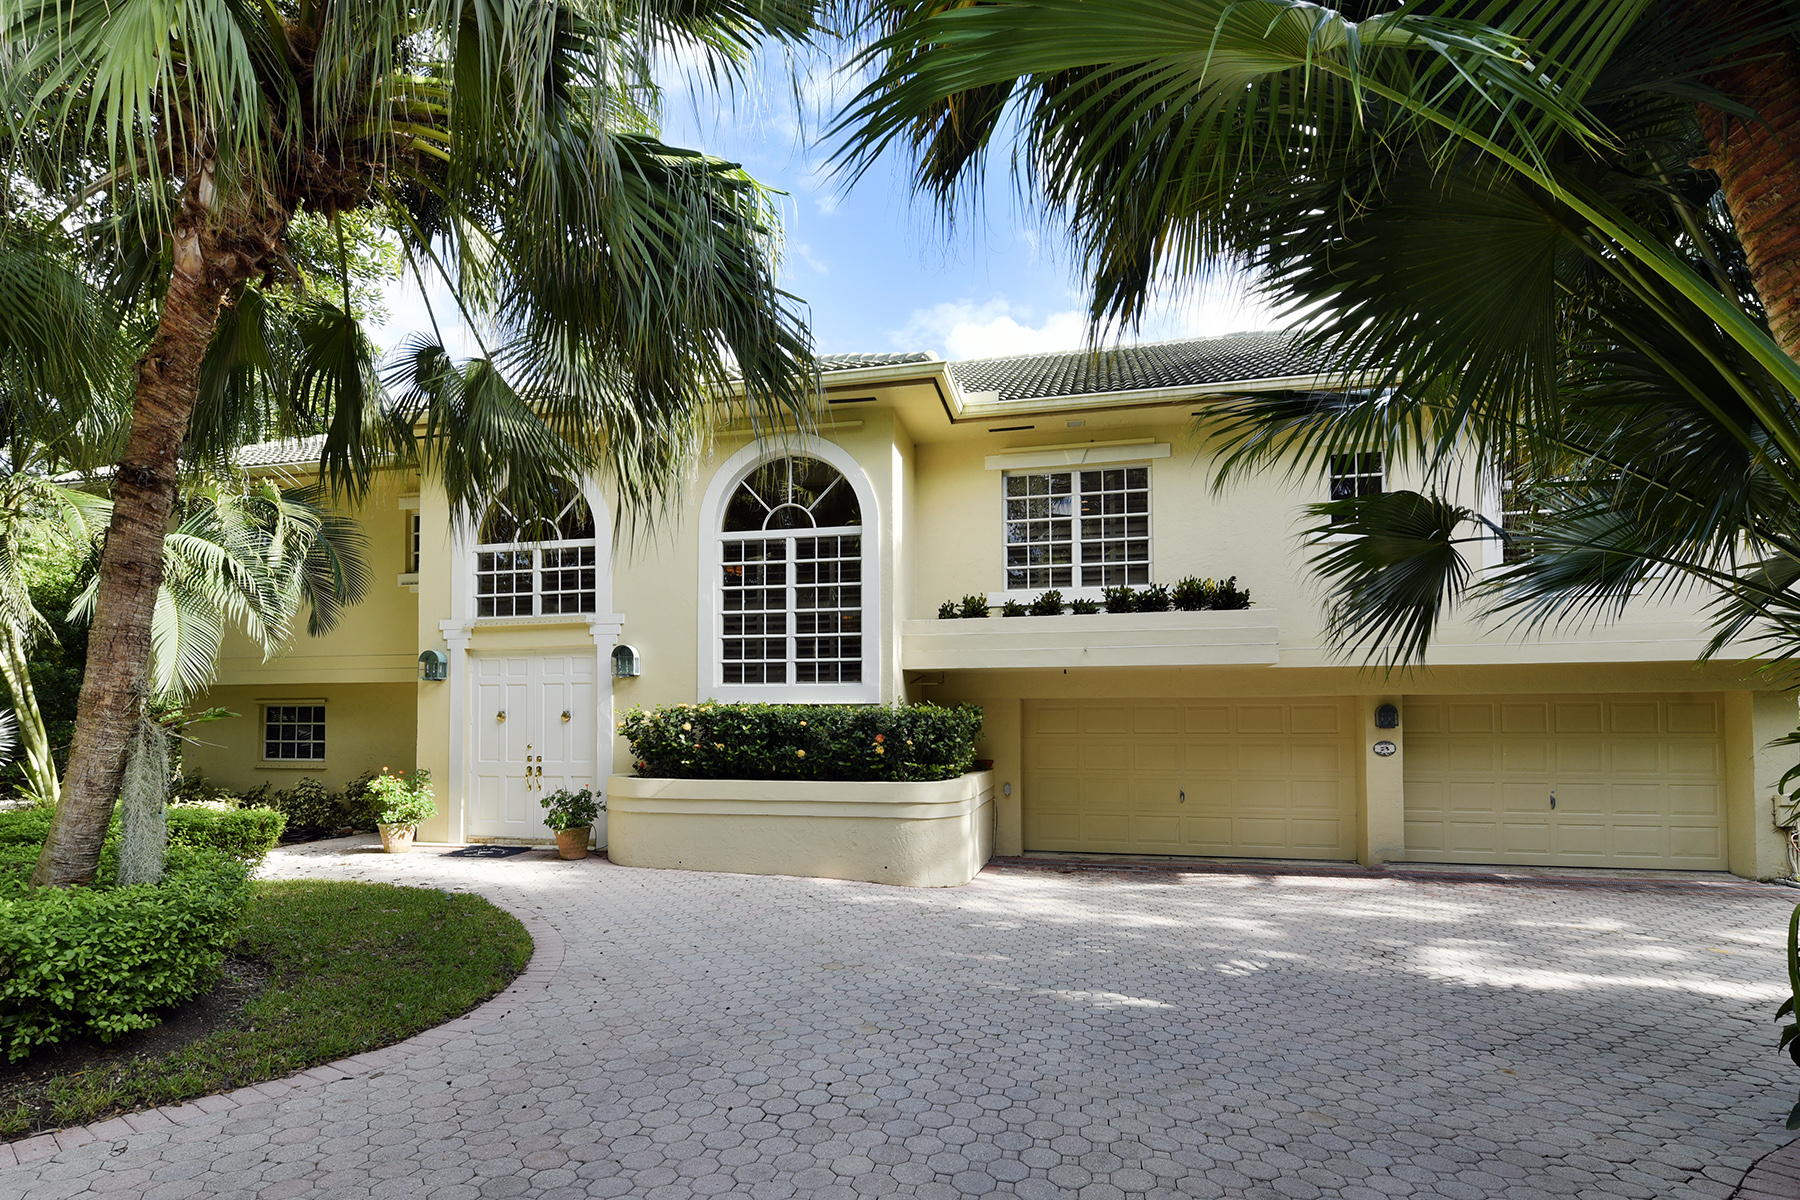 Single Family Home for Sale at Charming Golf Course Home at Ocean Reef 3 Bayberry Lane Key Largo, Florida 33037 United States